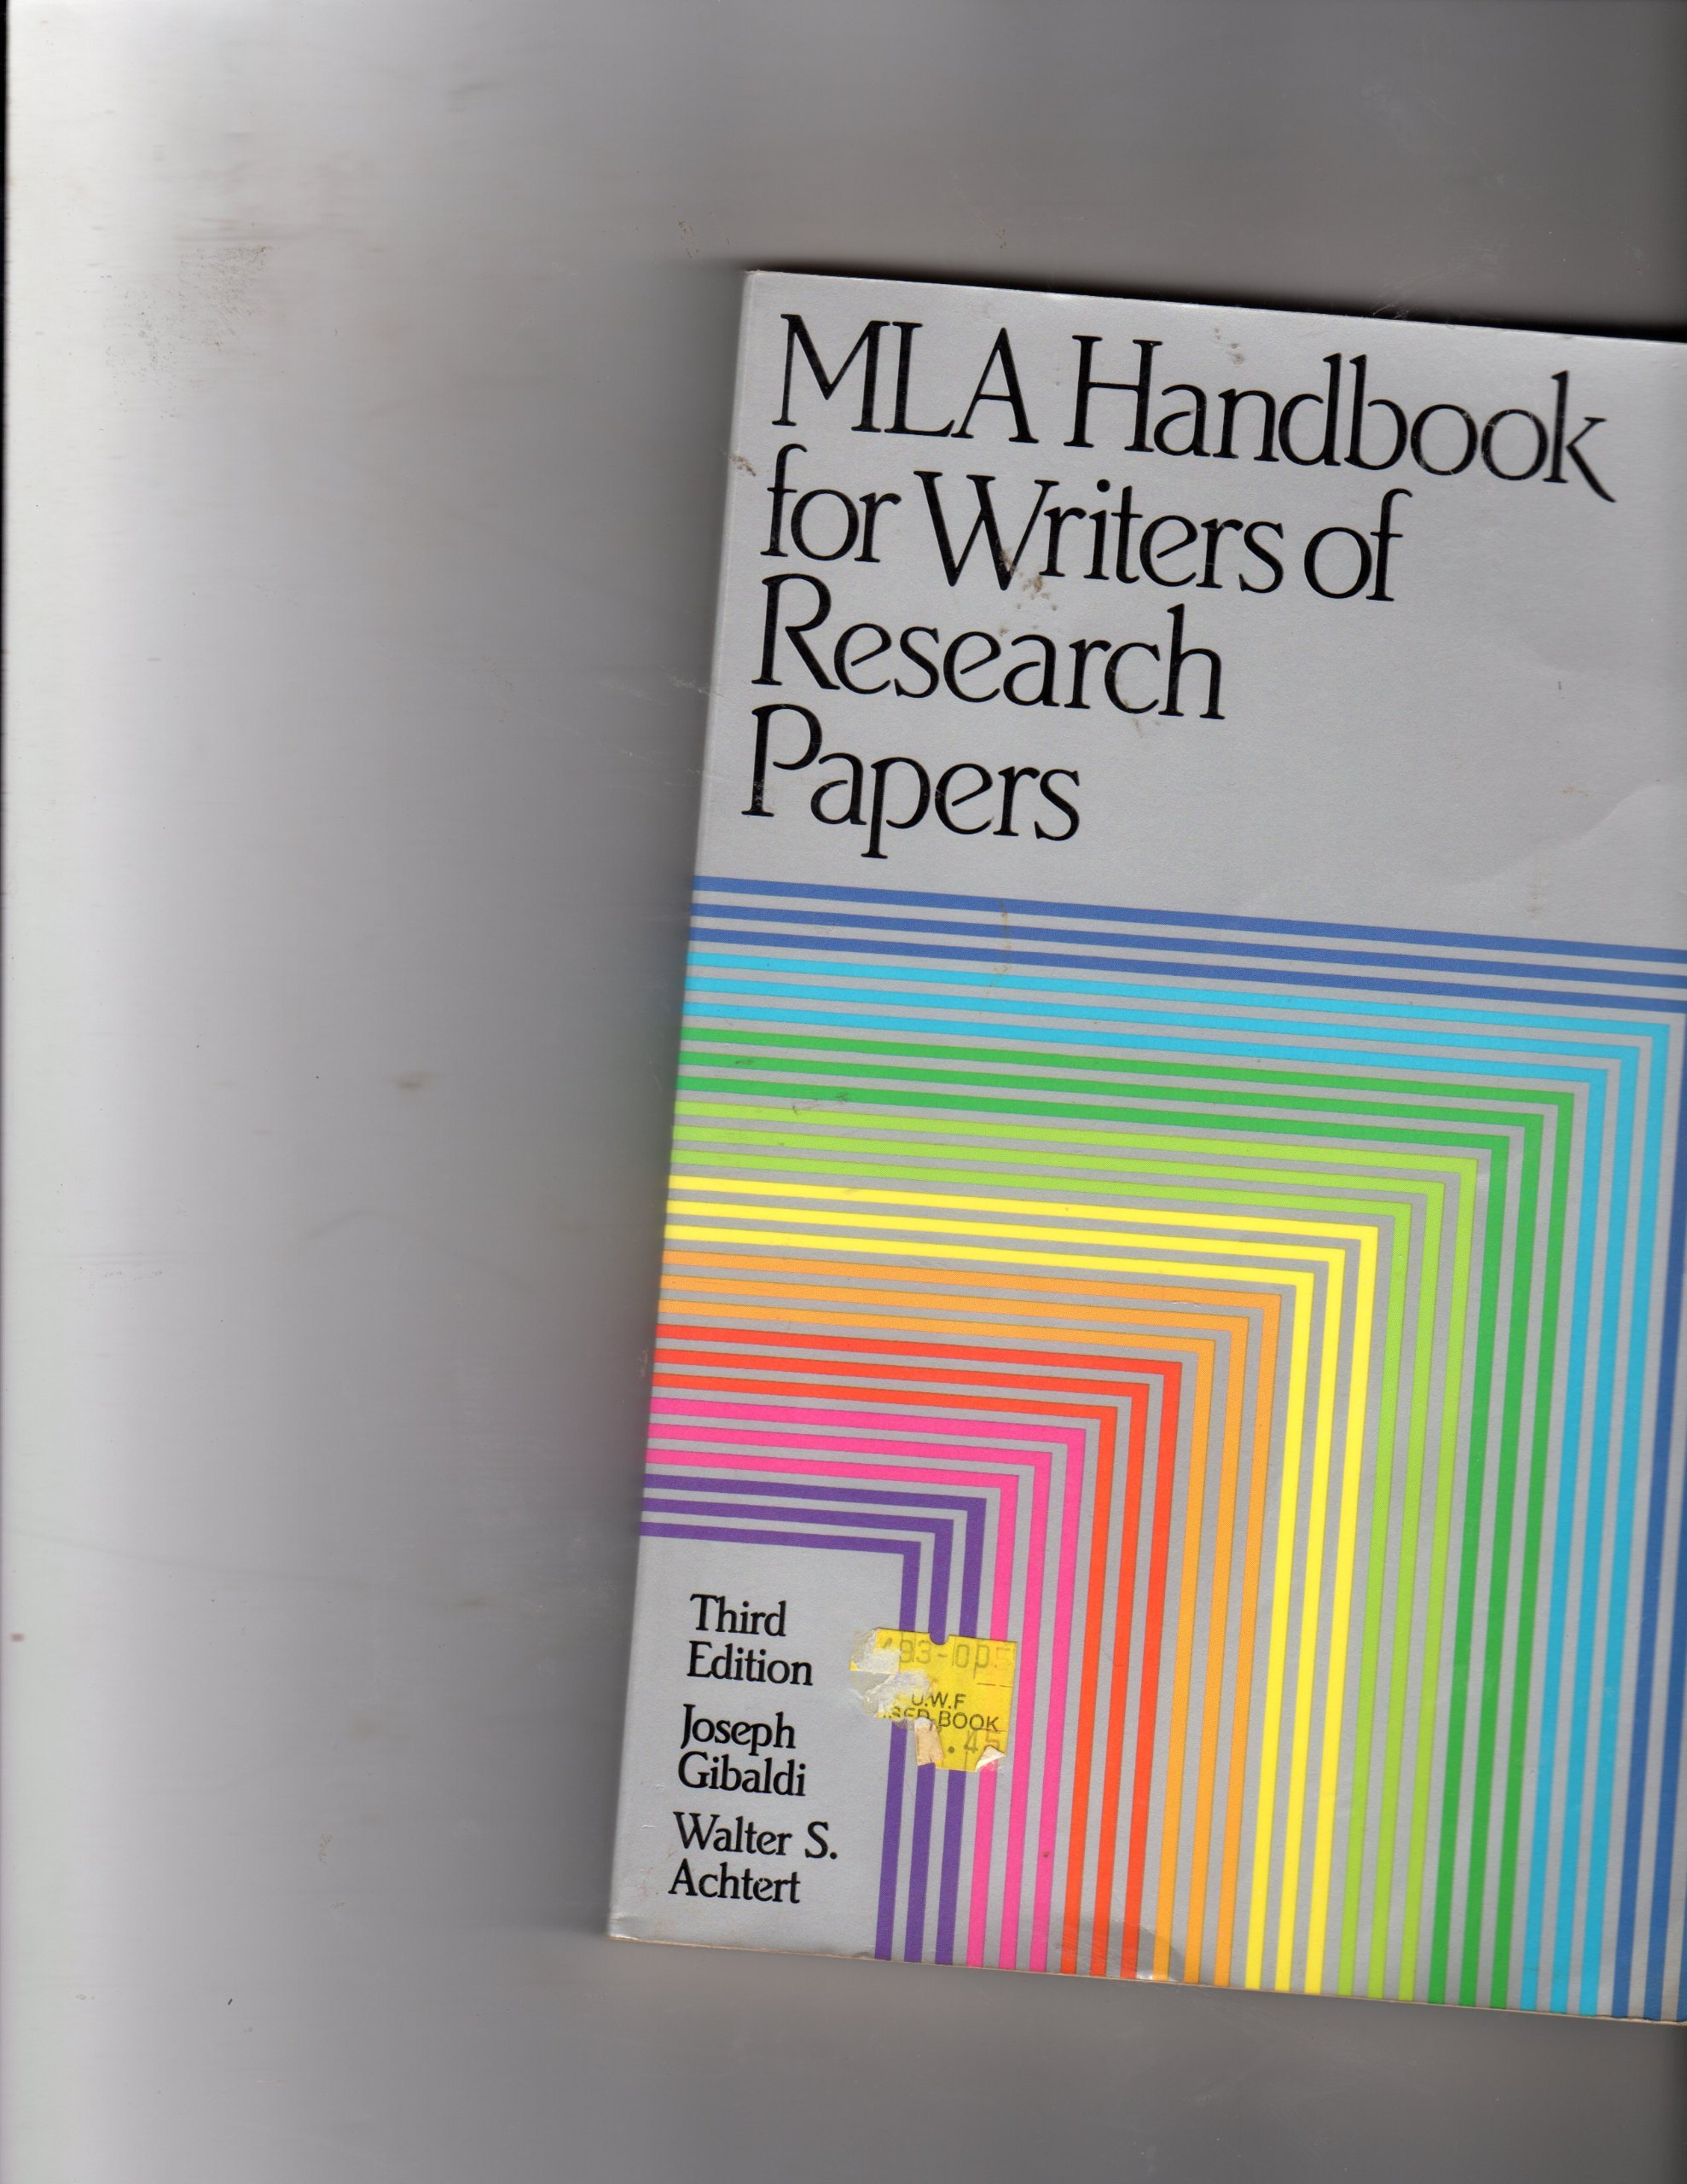 mla handbook for writer of research papers Loyola book stop 0.